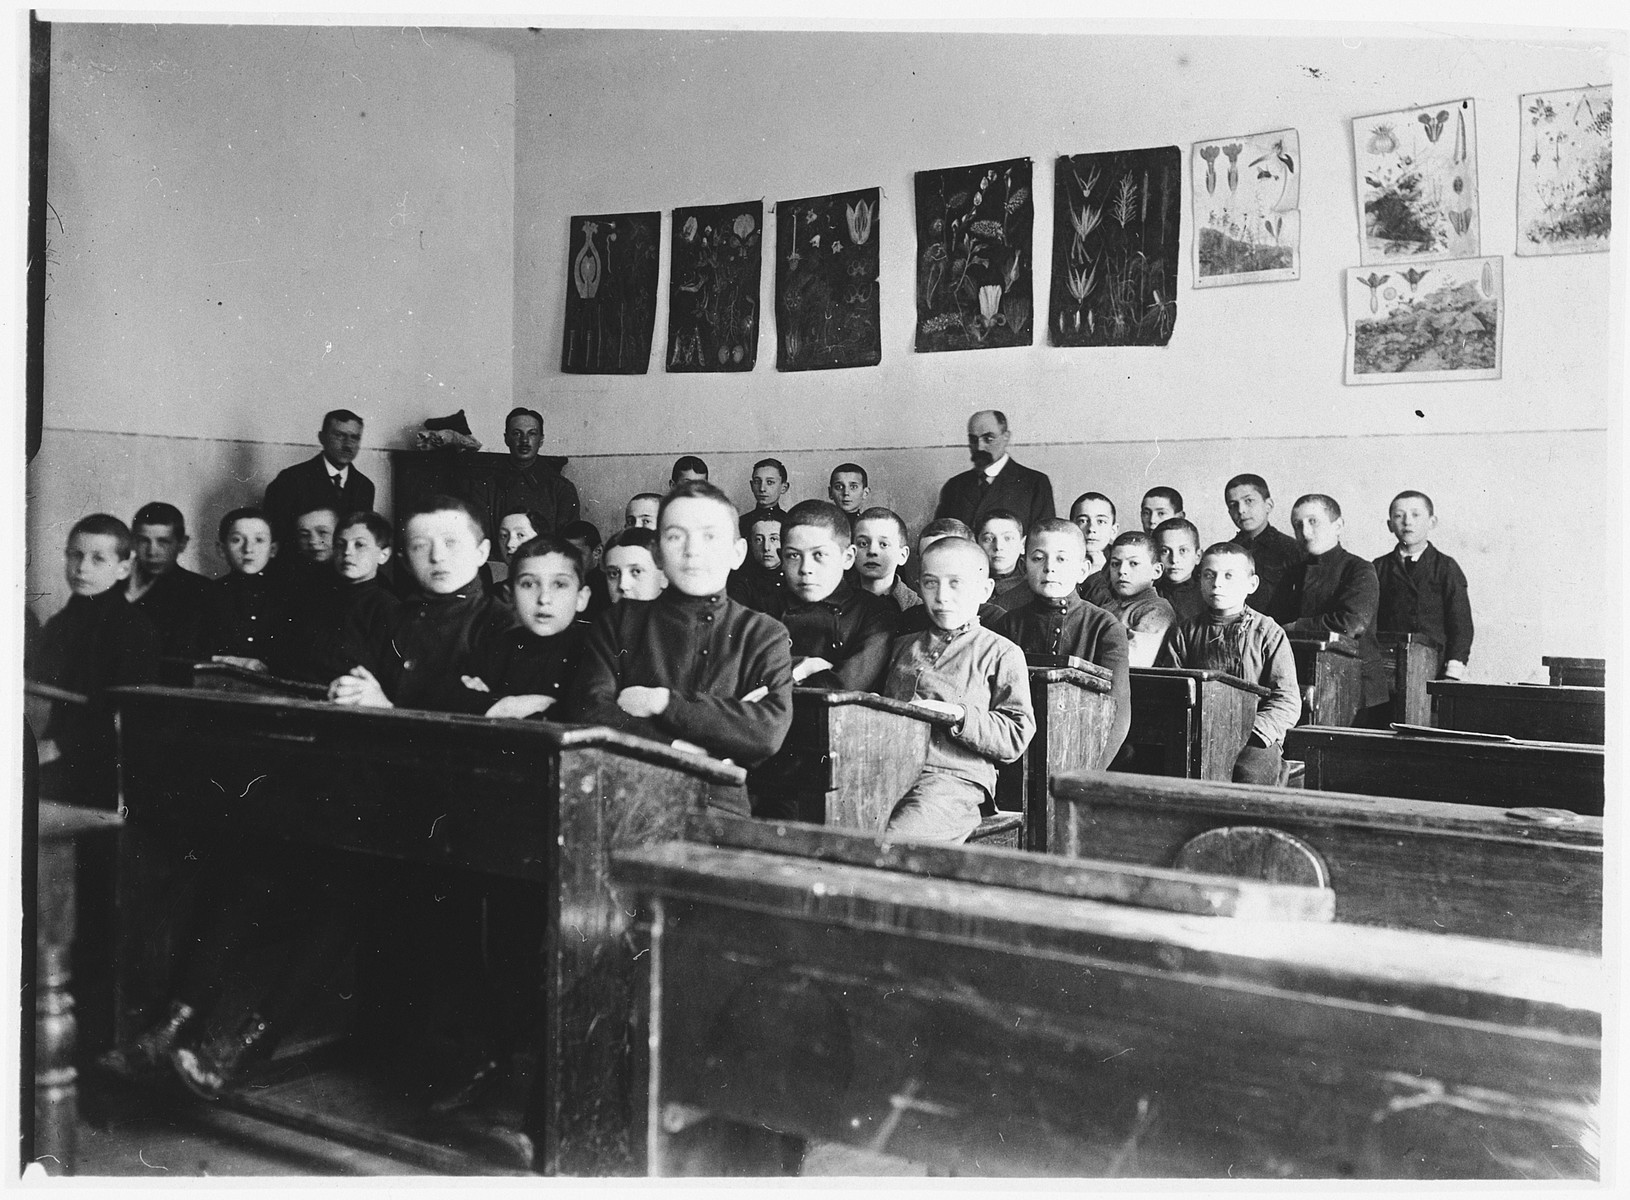 Class of the Hebrew Gymnasium in either Vilna or Grodno.  The teacher, Chaim Arye Chasan, is standing at the back.